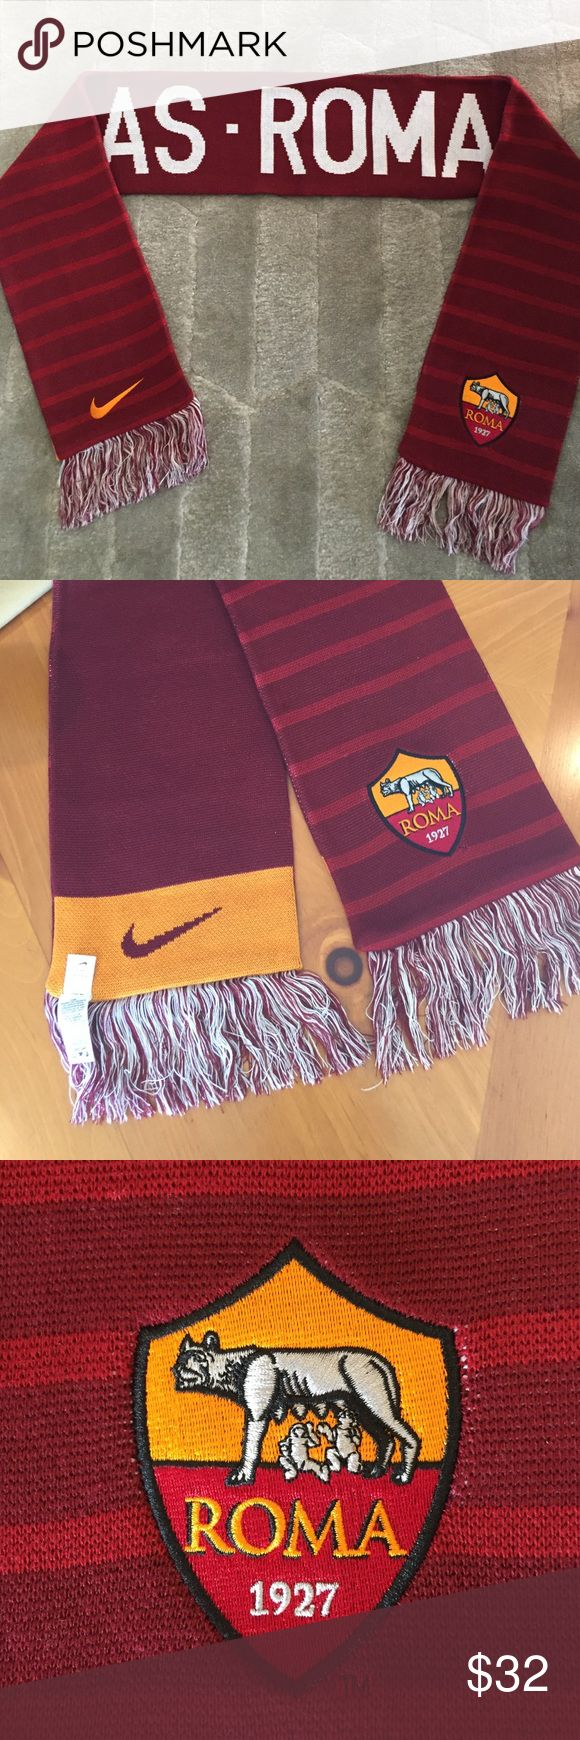 Nike officially licensed Roma Soccer Scarf/New New AS-Roma with fringed ends and double sided designs, embroidered in one side with Nike logo and the other with the Roma insignia, I got in Rome and never used it Nike Accessories Scarves